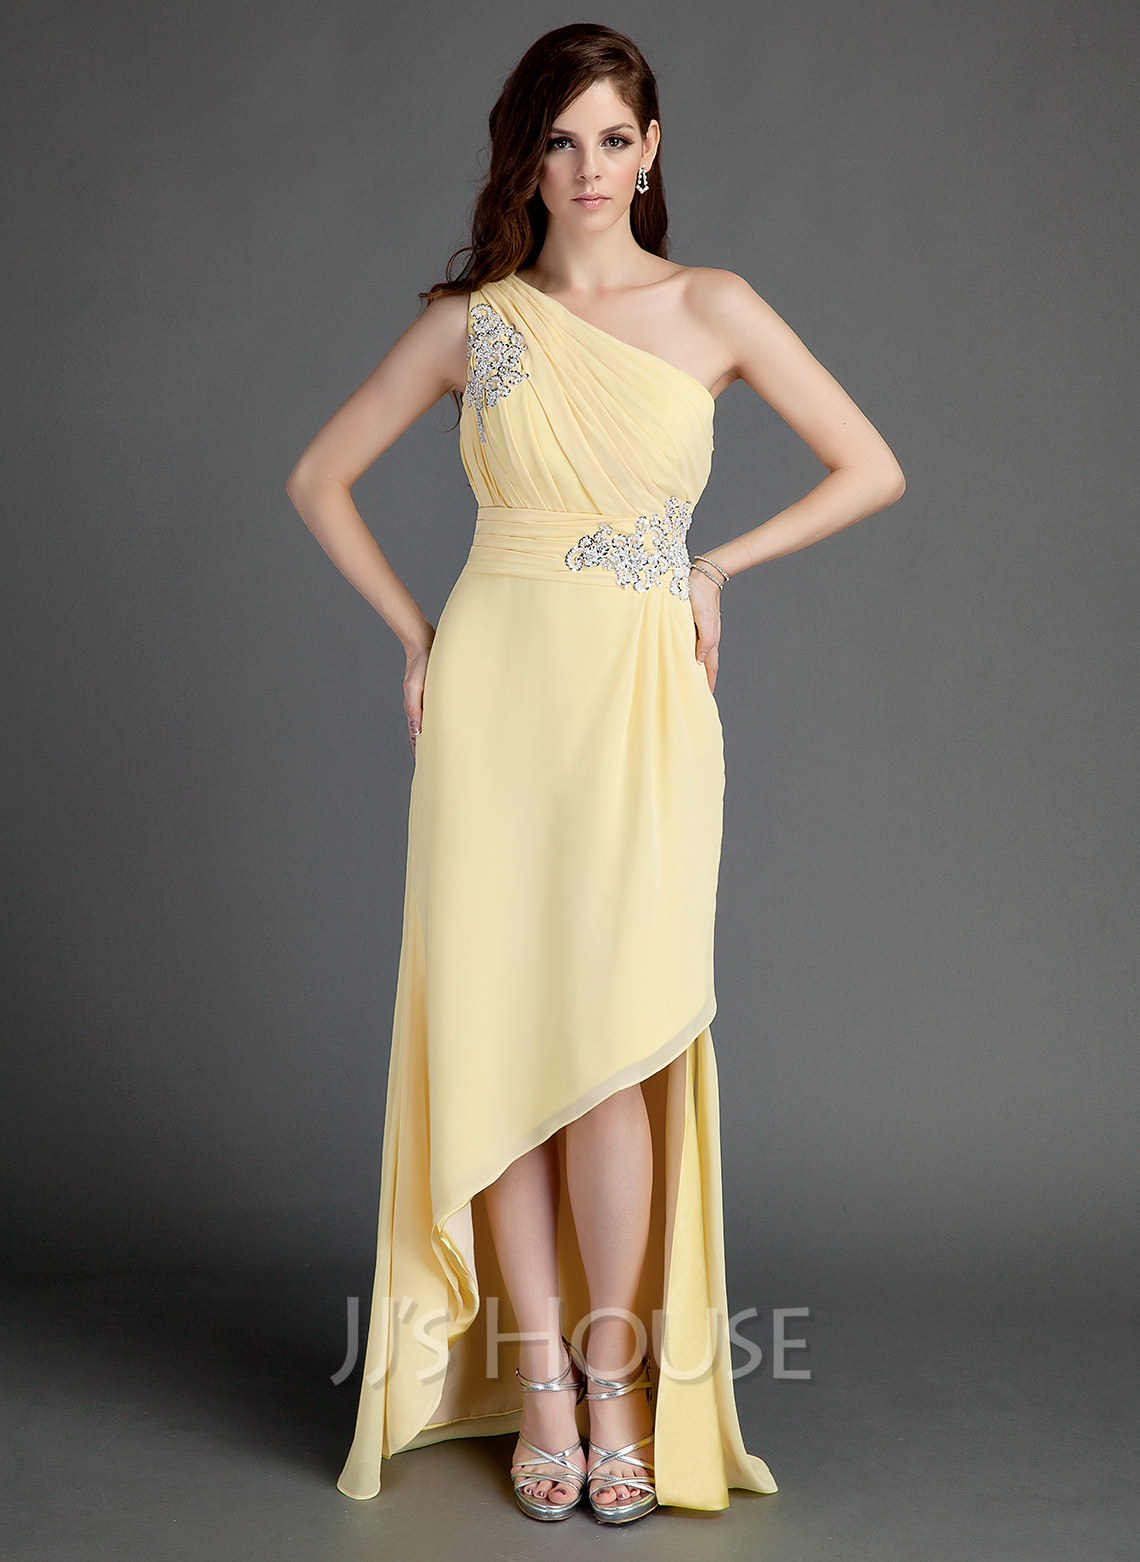 A-Line/Princess One-Shoulder Asymmetrical Chiffon Holiday Dress With Ruffle Beading Appliques Lace